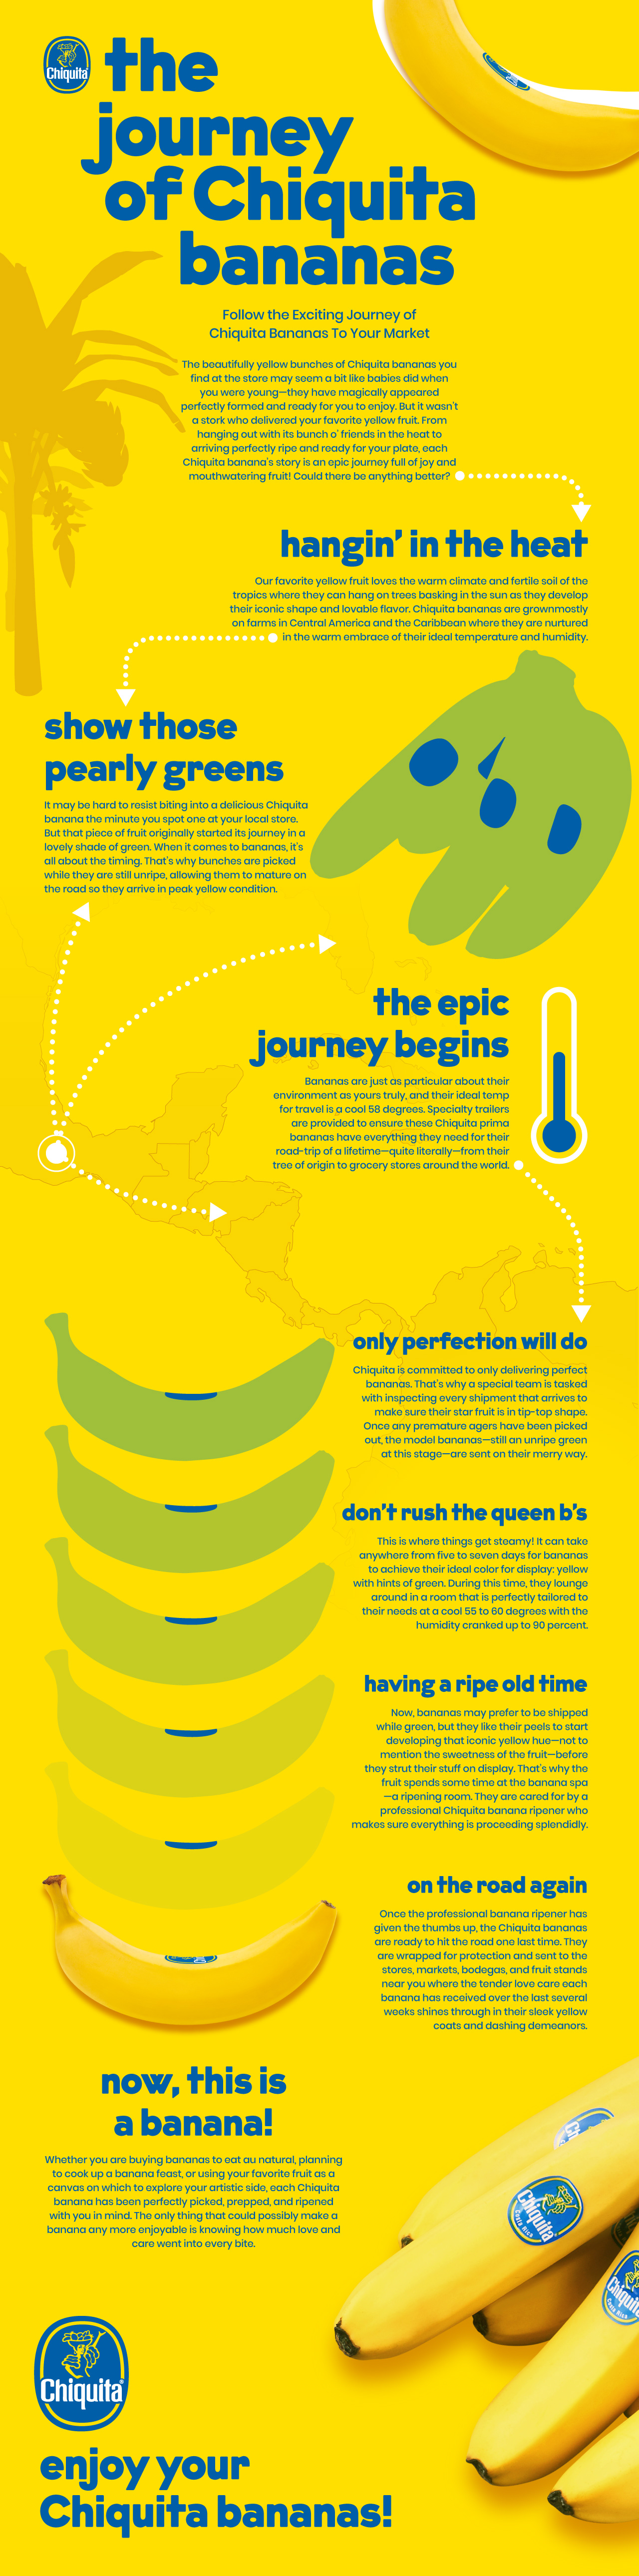 Chiquita-journey-infographic-1.0 (2).jpg